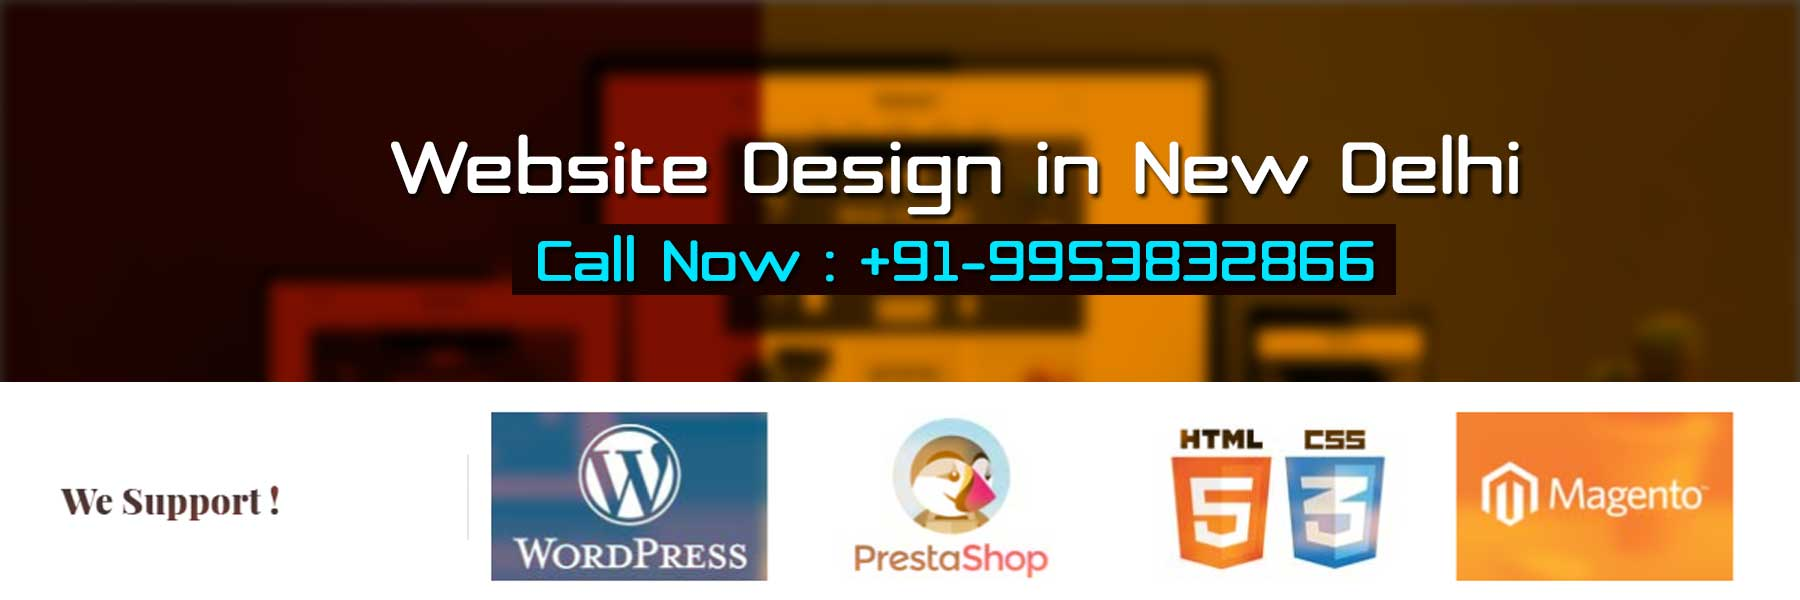 Website Design in New Delhi